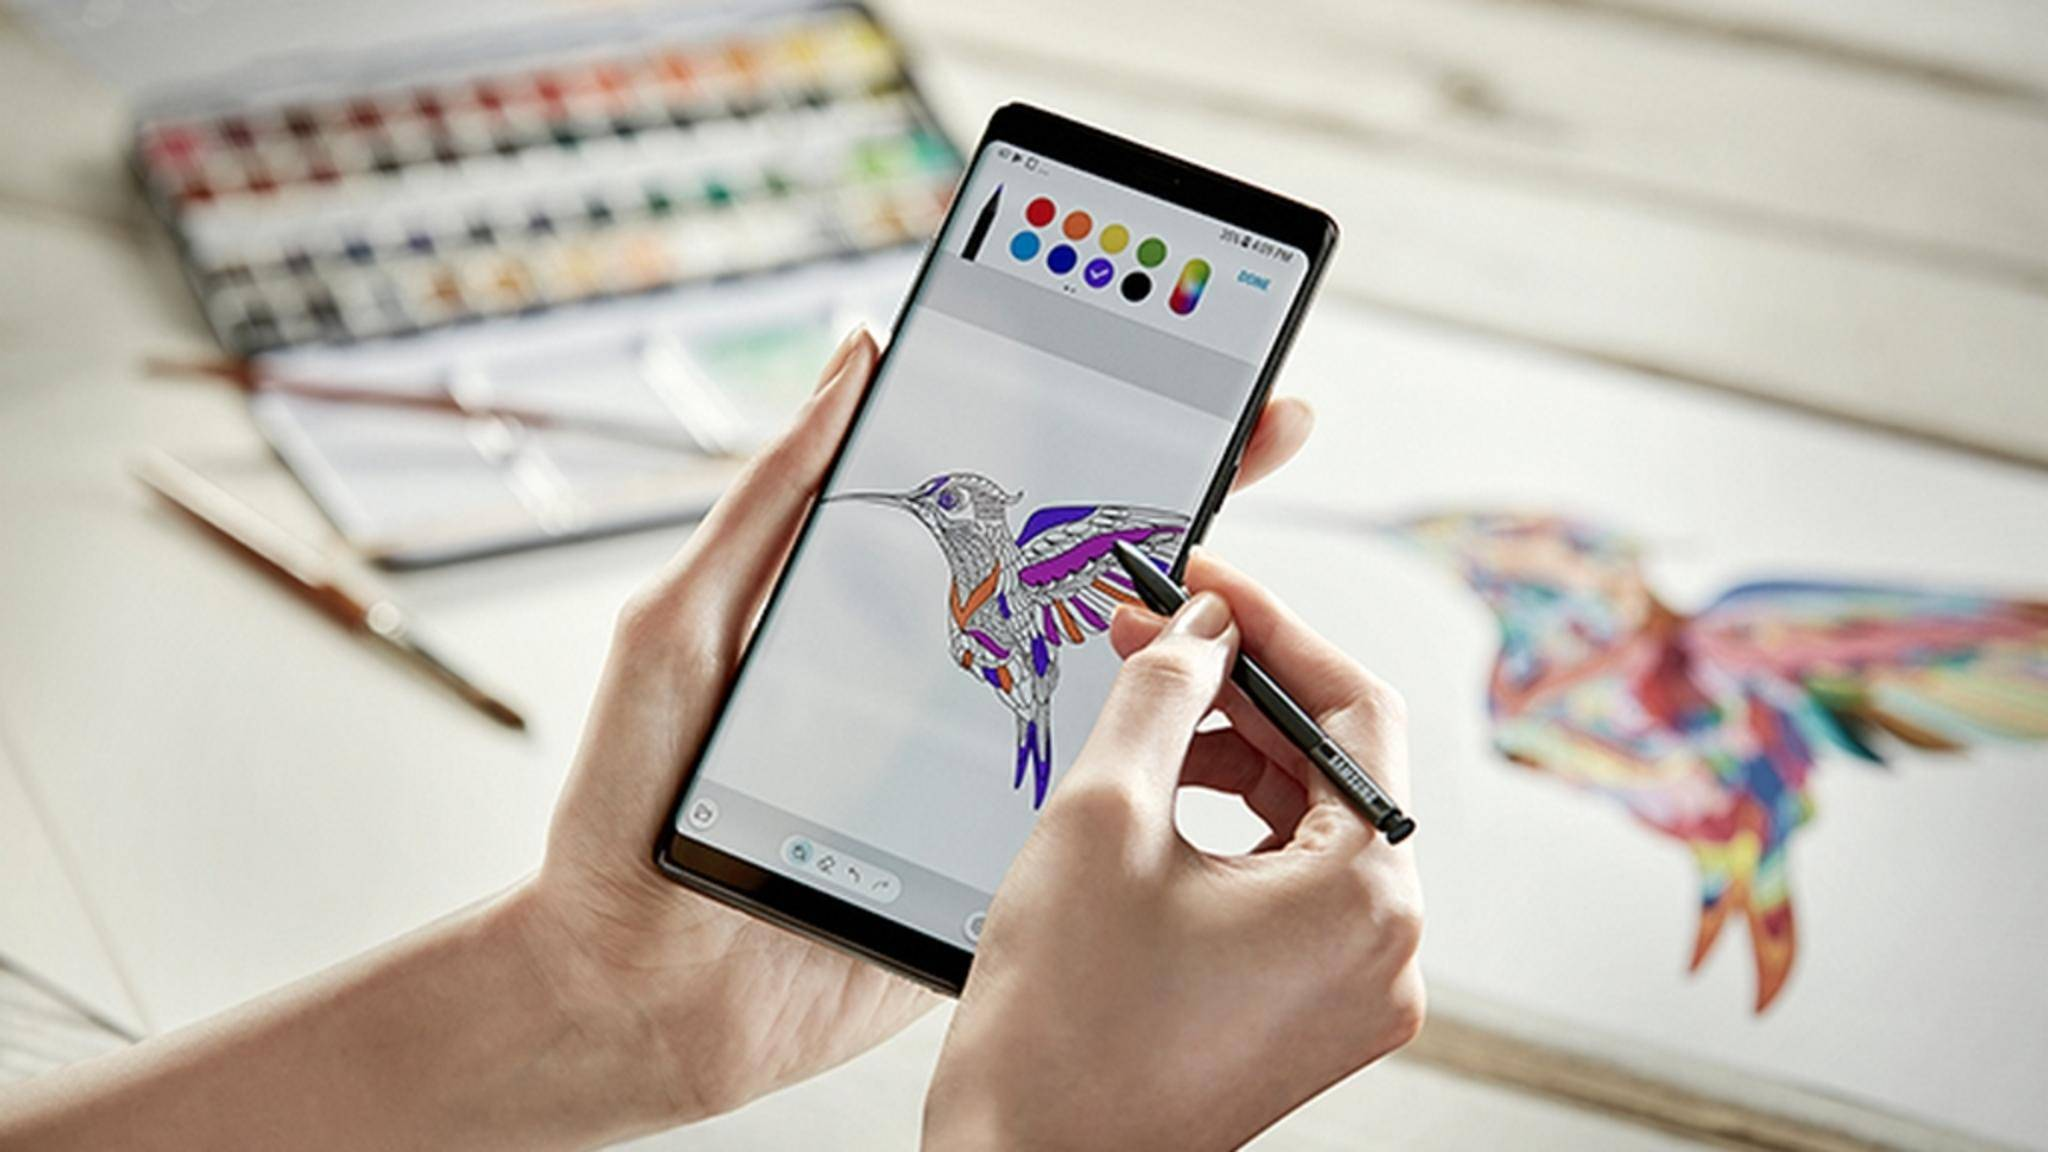 Das Galaxy Note 8 hat laut Test den besten Screen aller Smartphones.